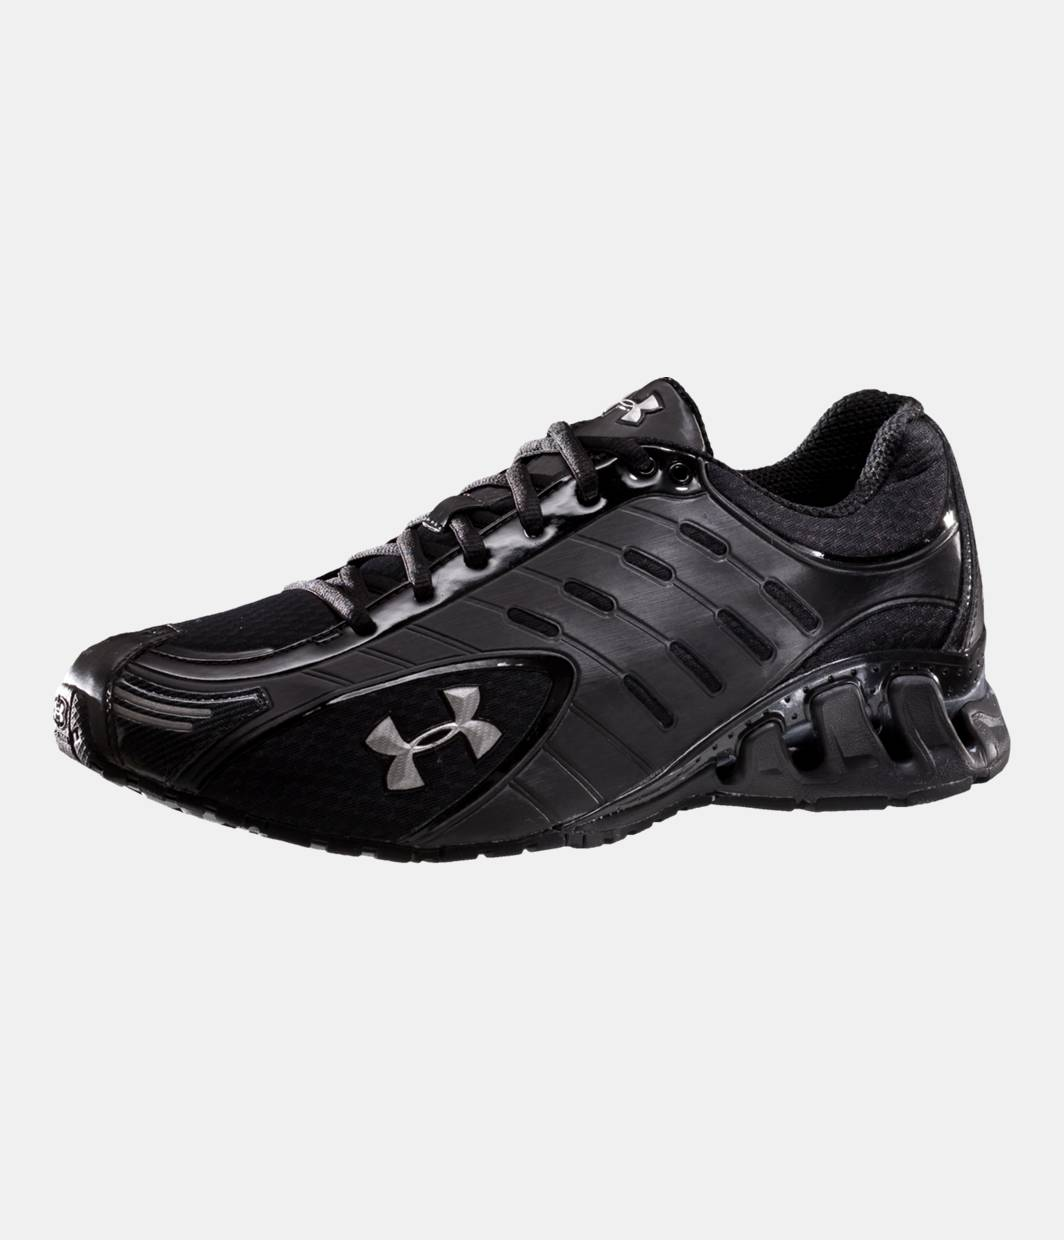 Under Armour Cartilage Shoes Mens Running